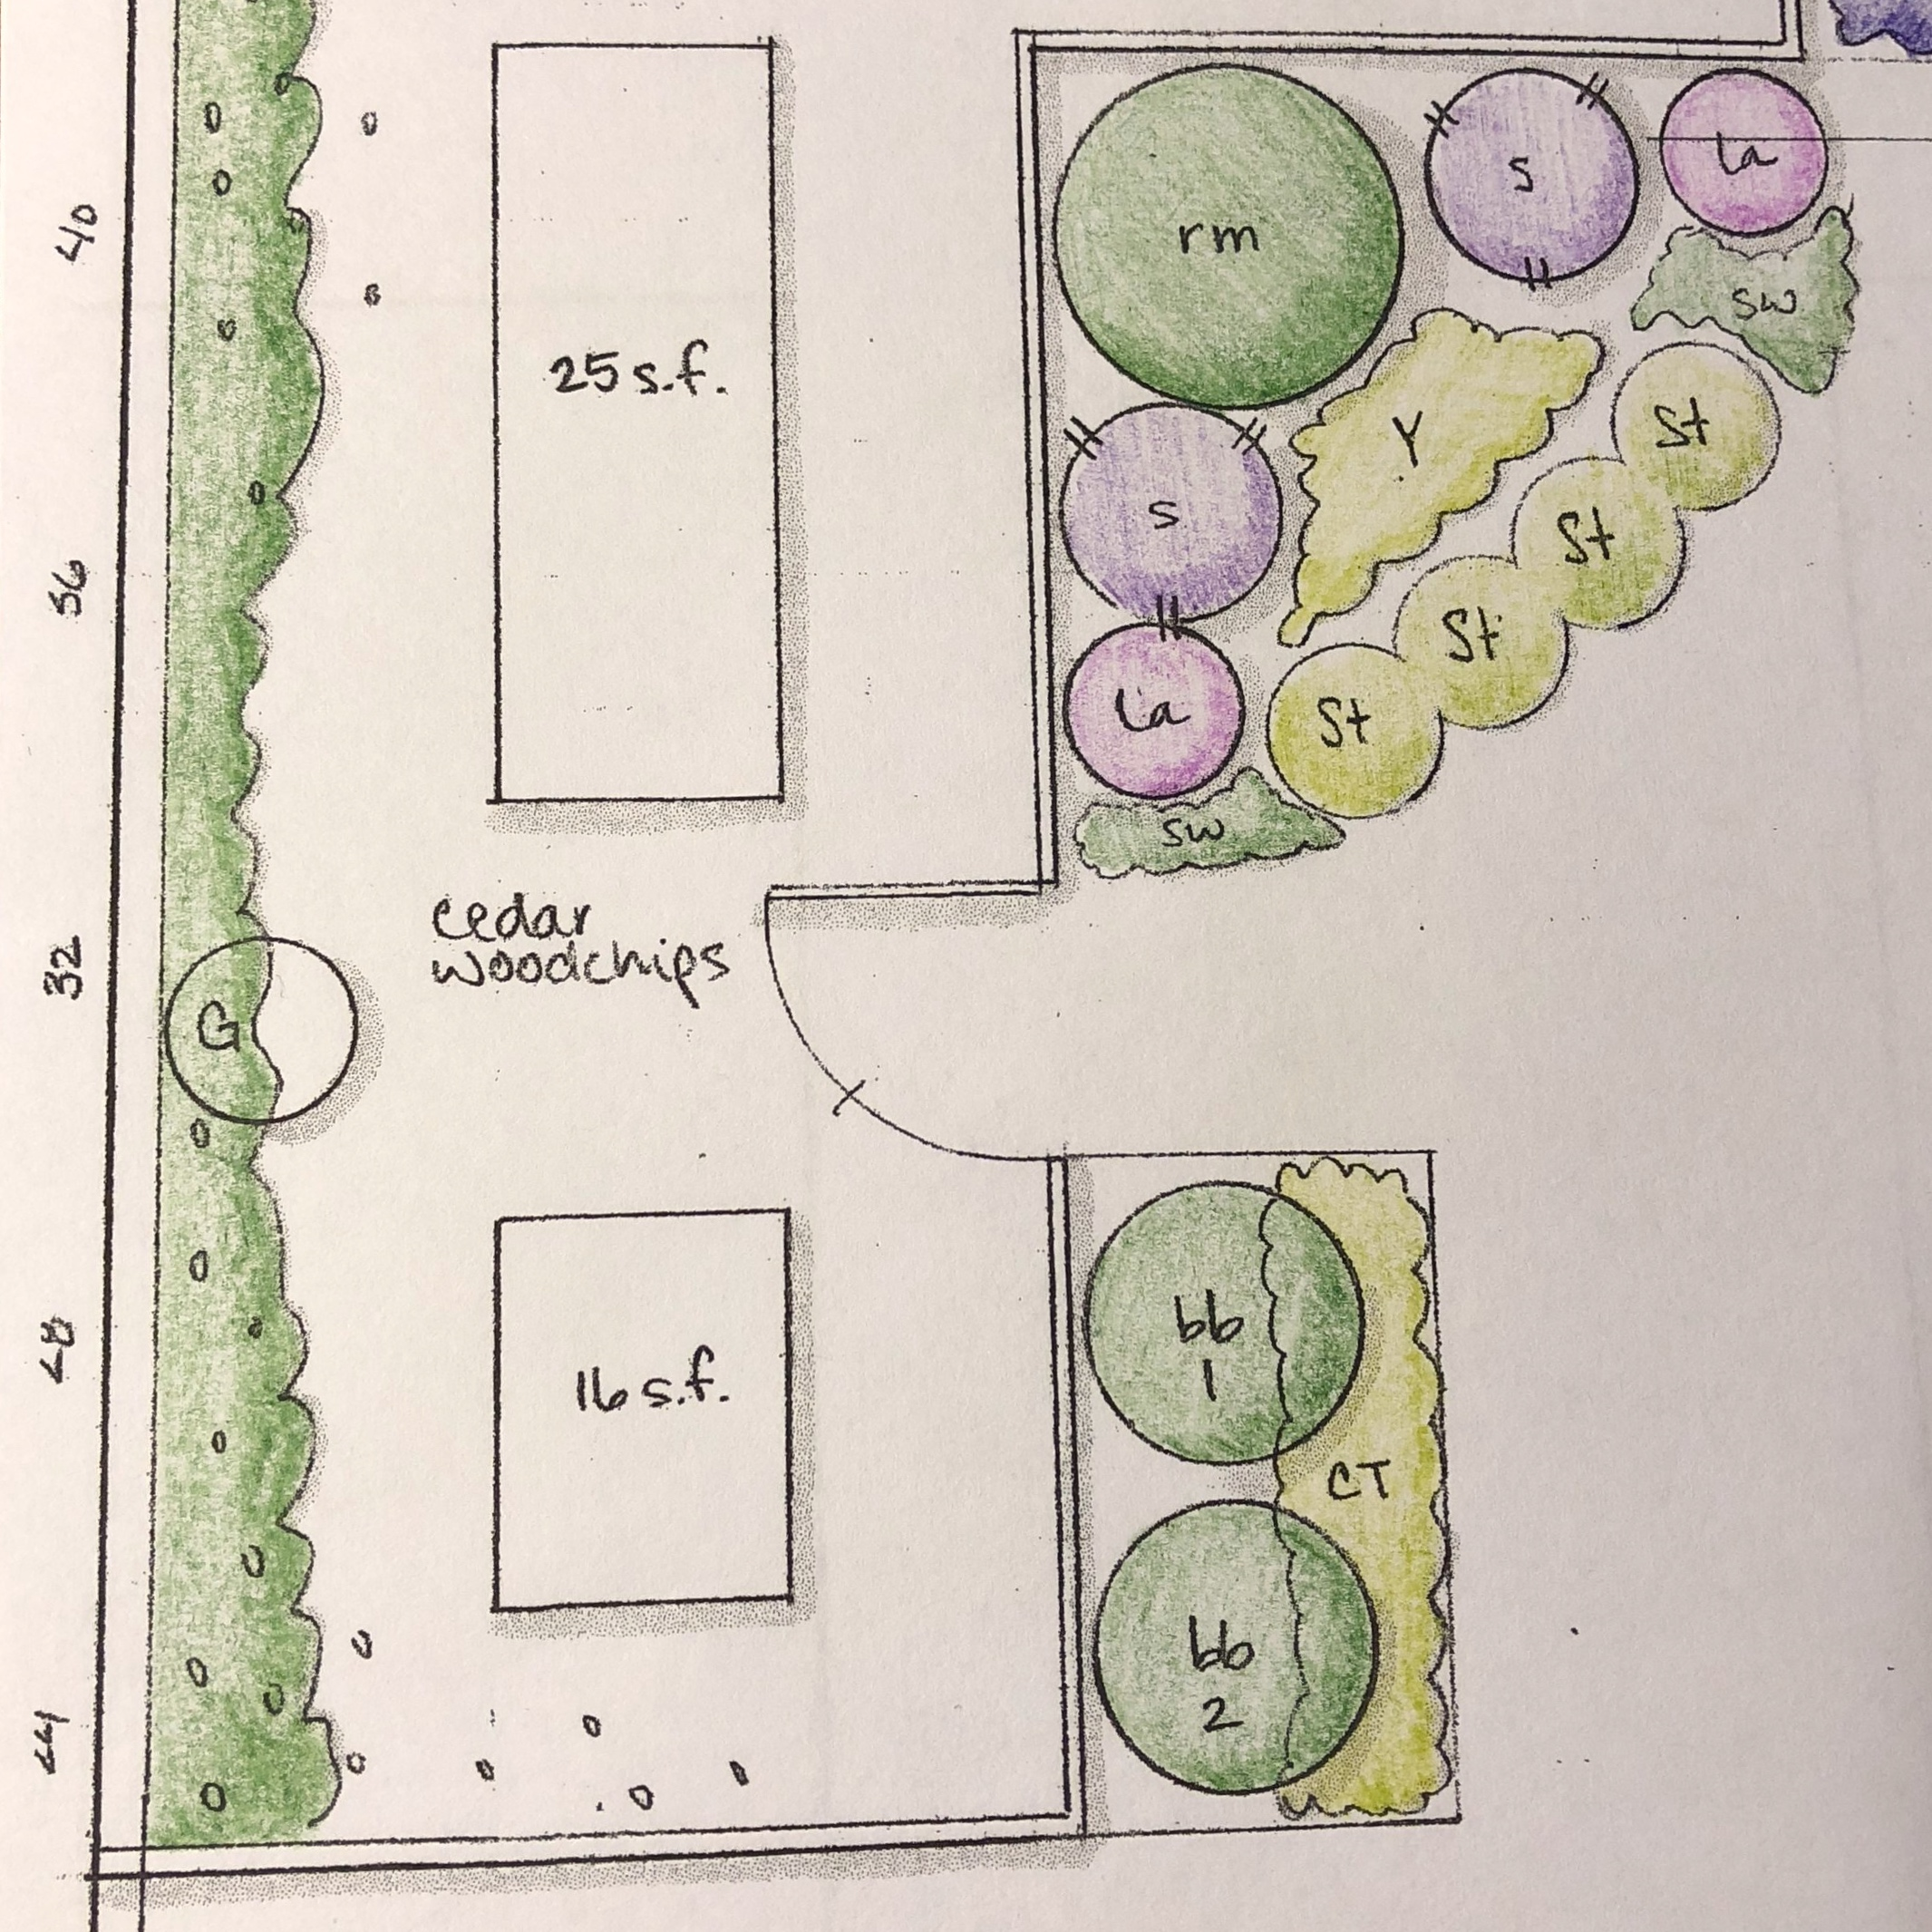 Close up of a hand-drawn landscape planting plan.